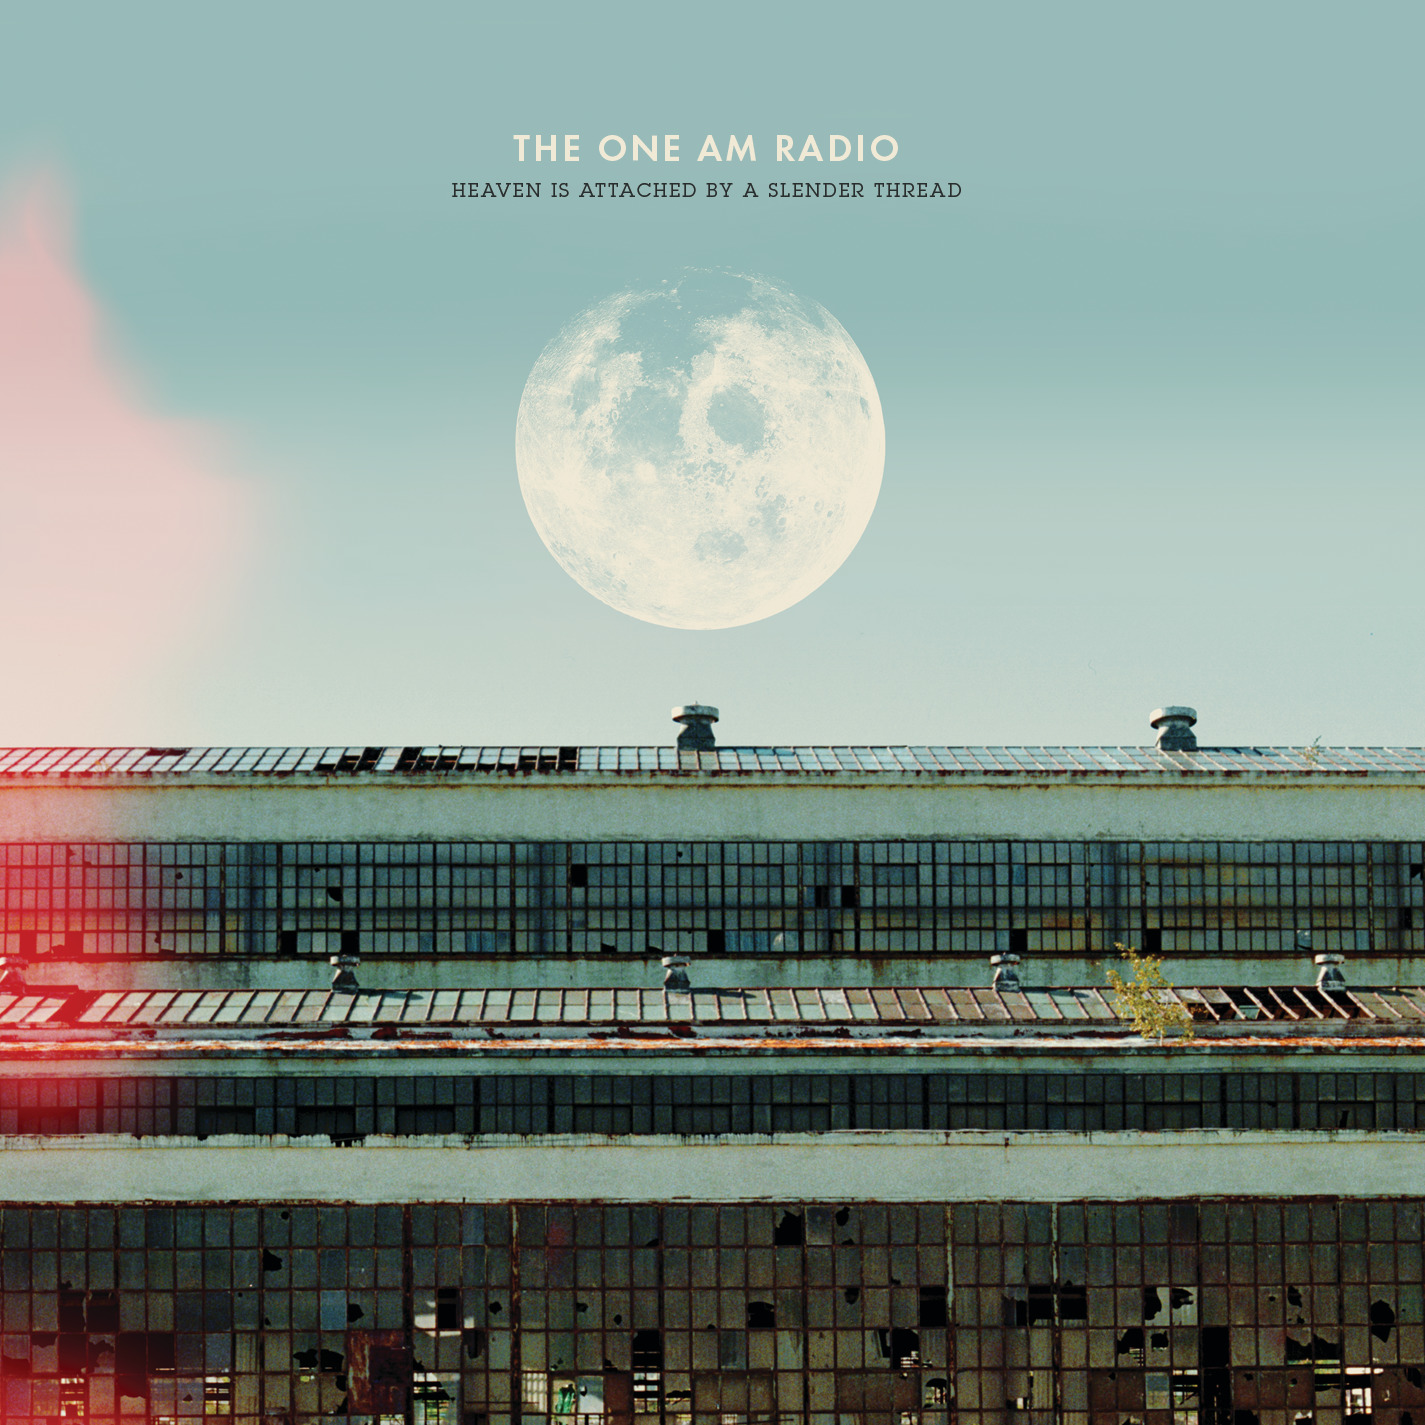 The One AM Radio - Heaven Is Attached by a Slender Thread - Digital